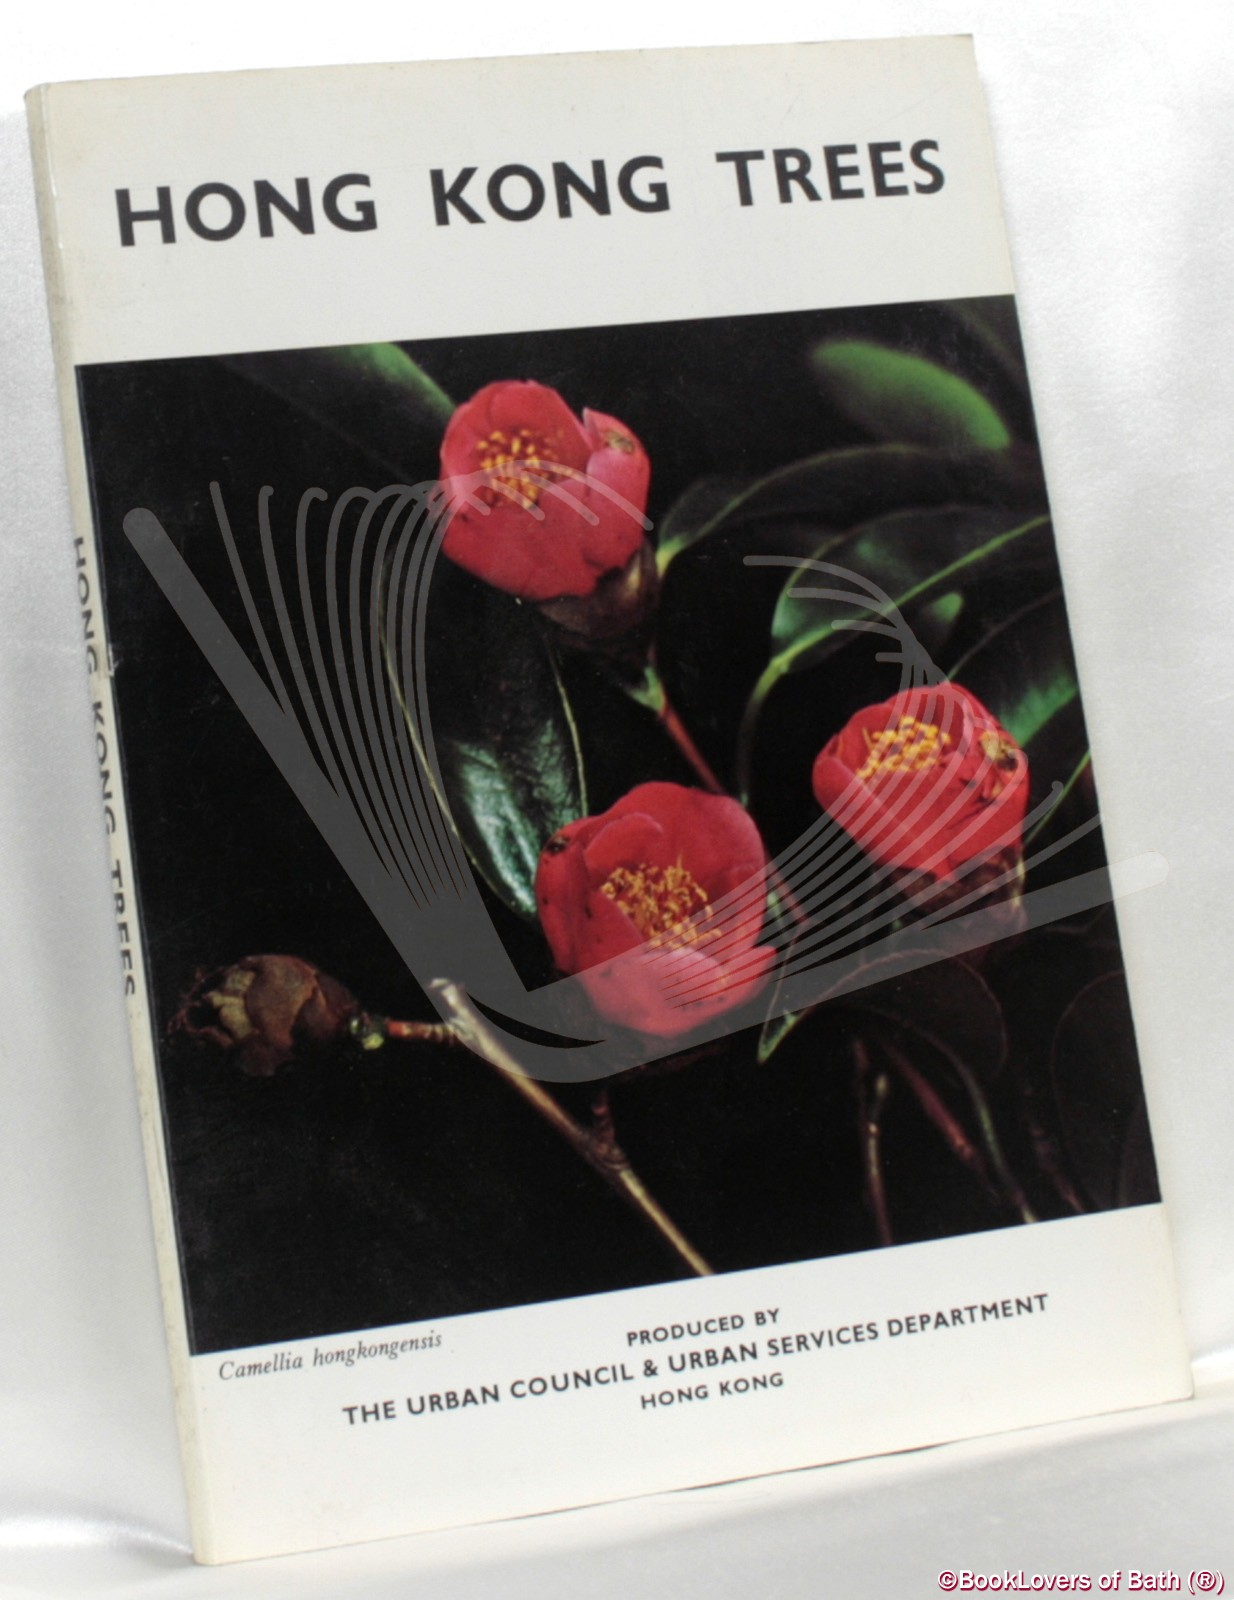 Hong Kong Trees - Anon.